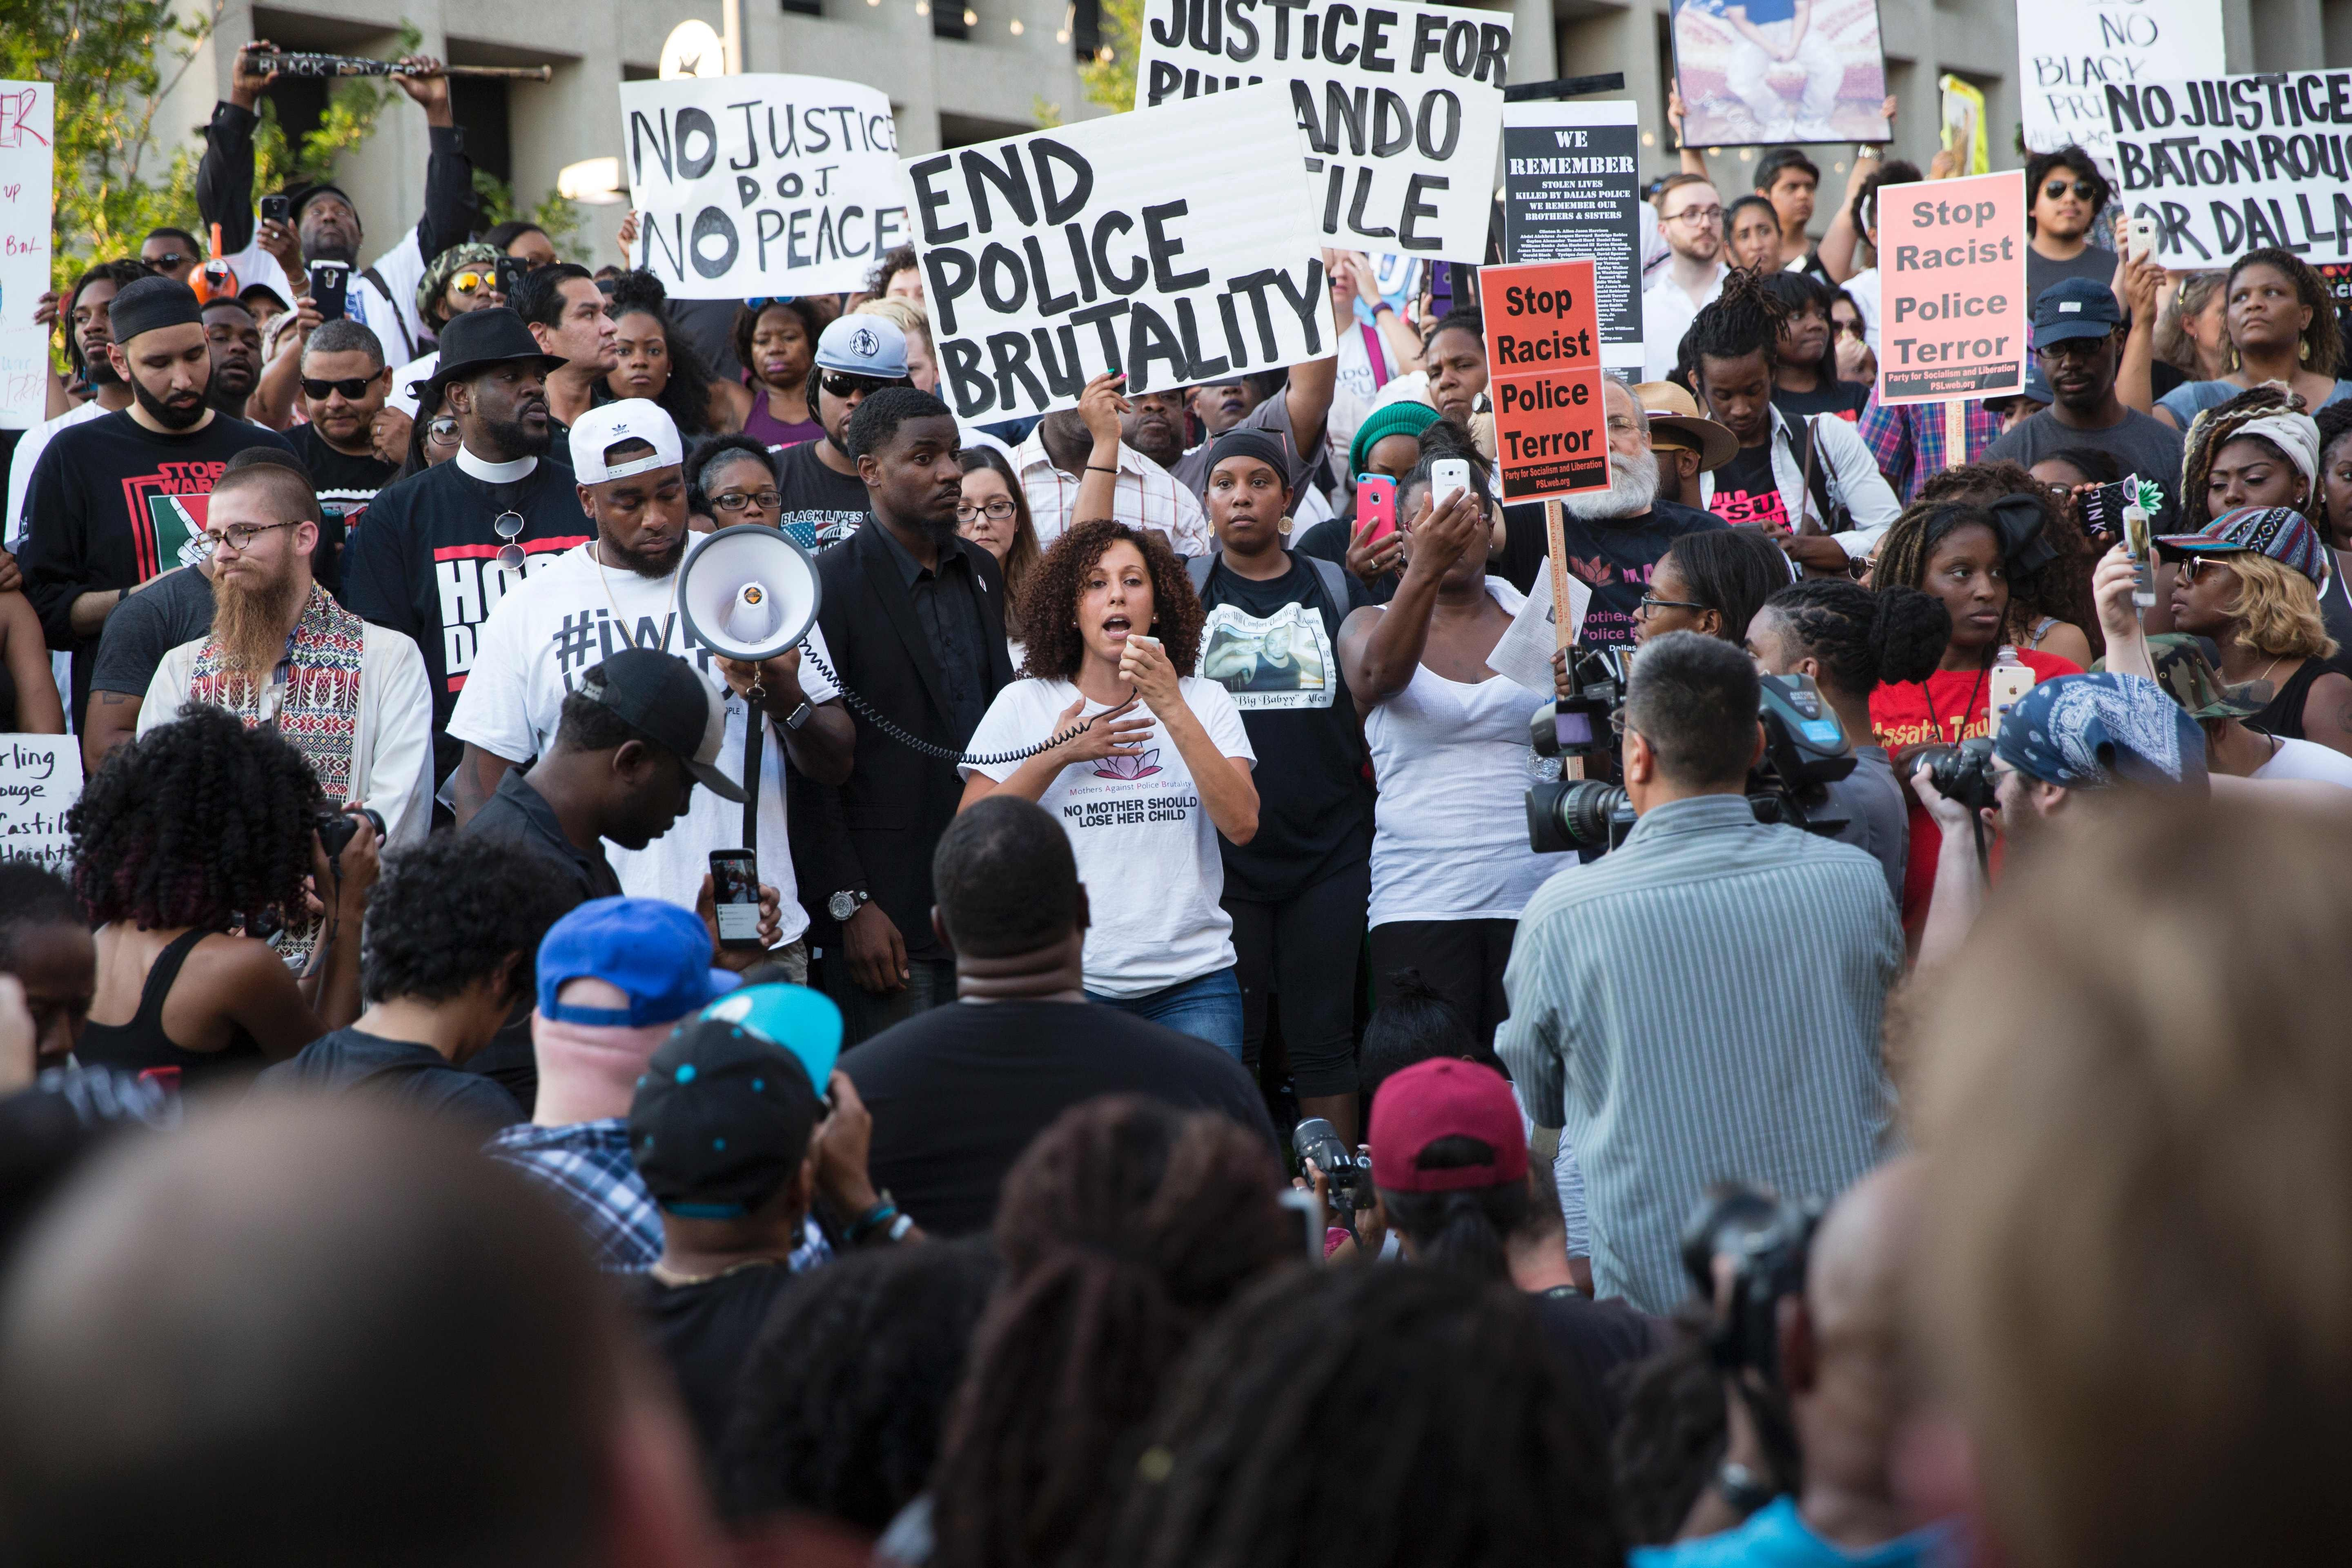 People rally in Dallas on Thursday, July 7, 2016 to protest the deaths of Alton Sterling and Philando Castile.